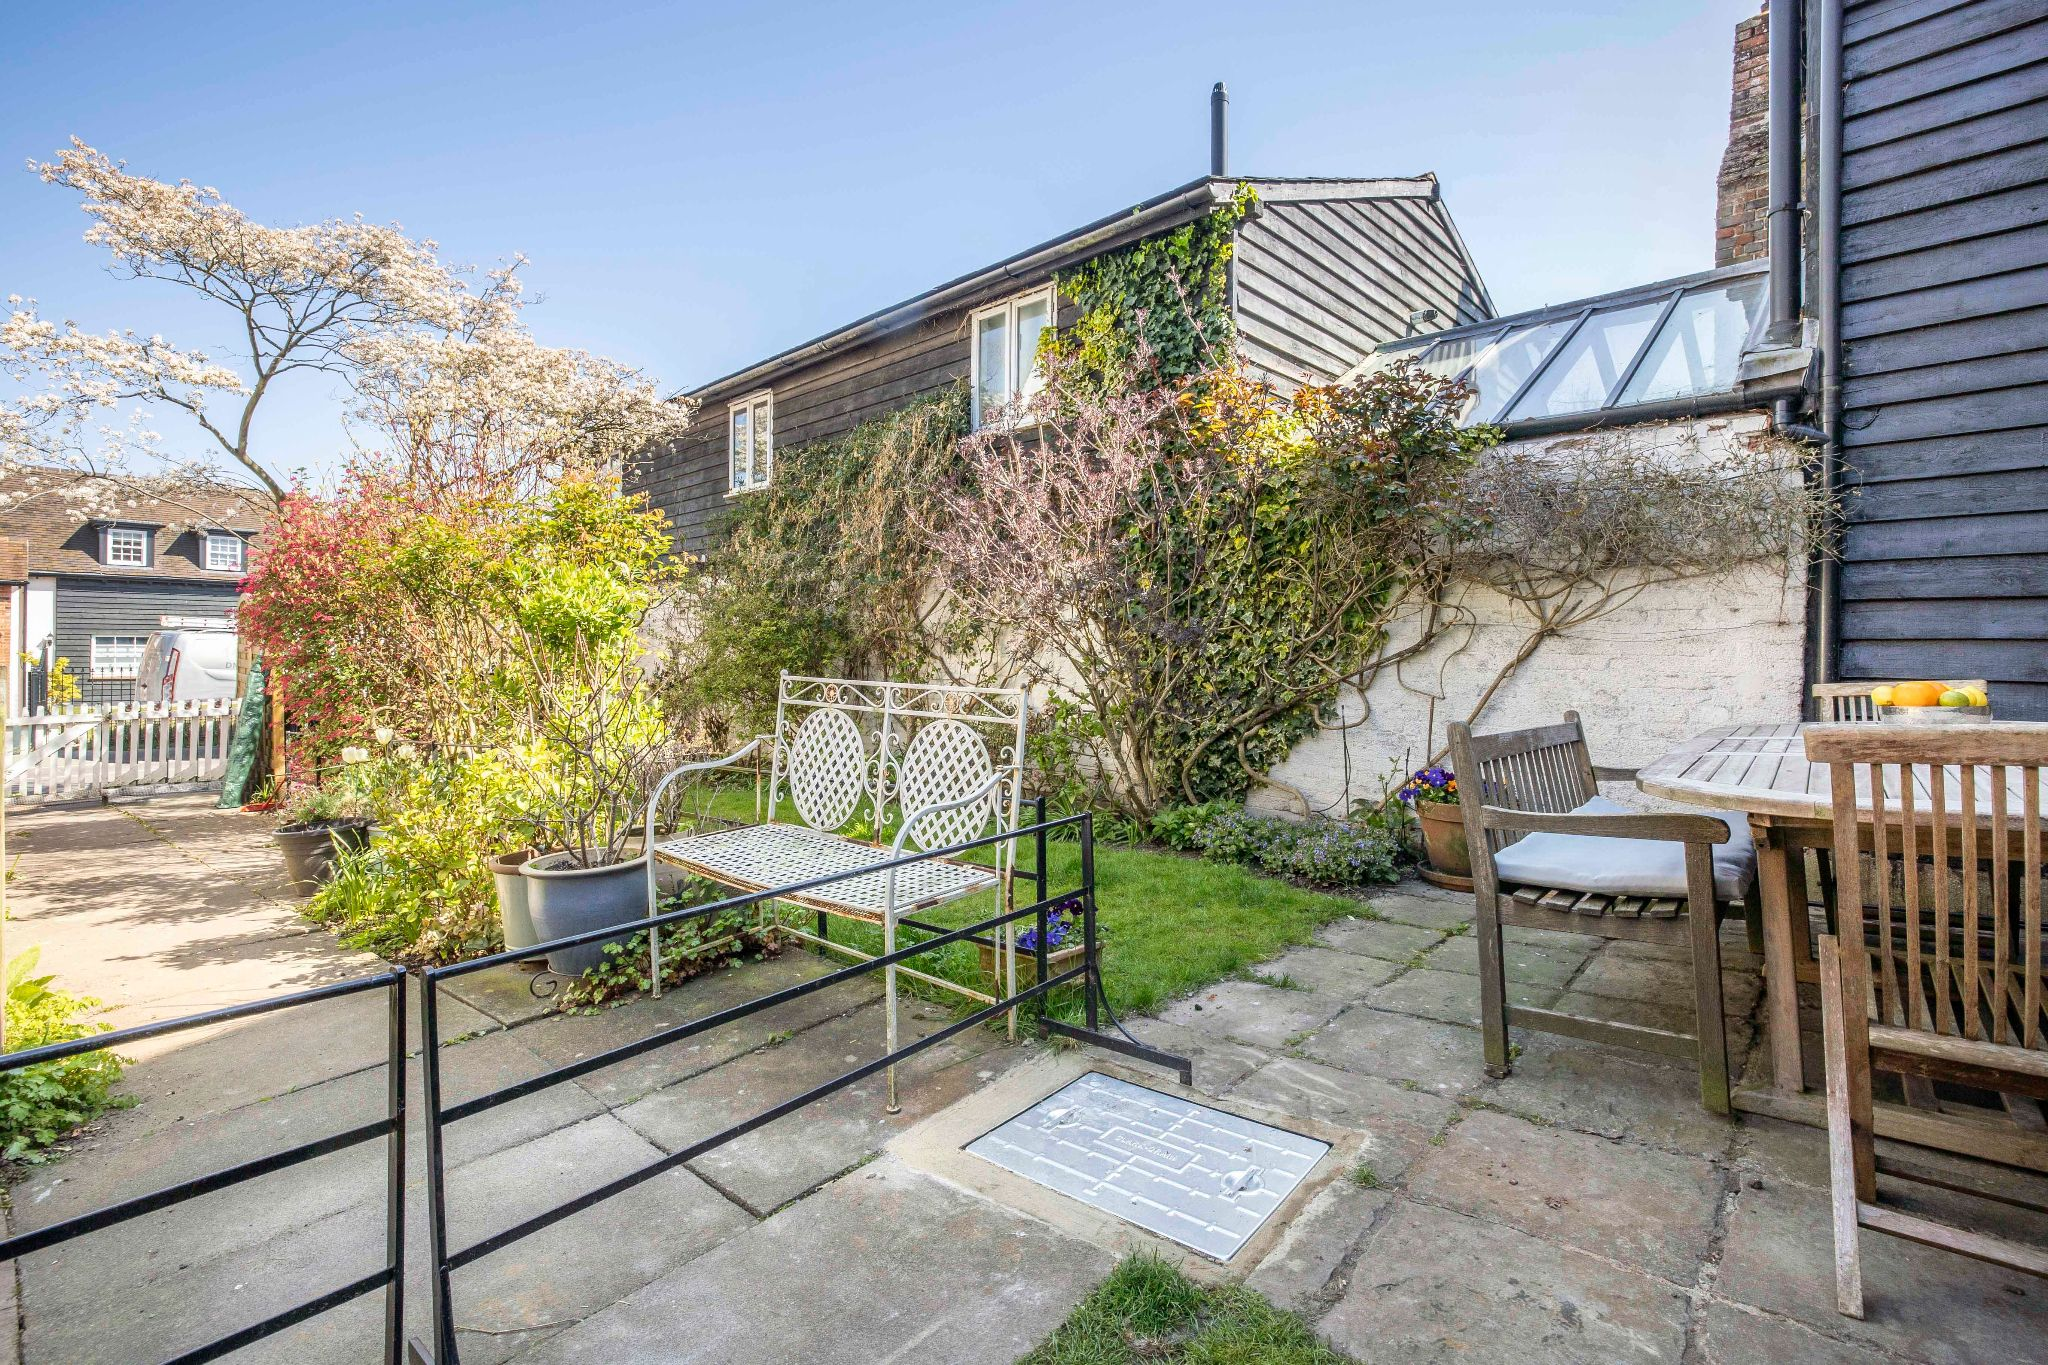 4 bedroom mid terraced house For Sale in Essendon - Photograph 21